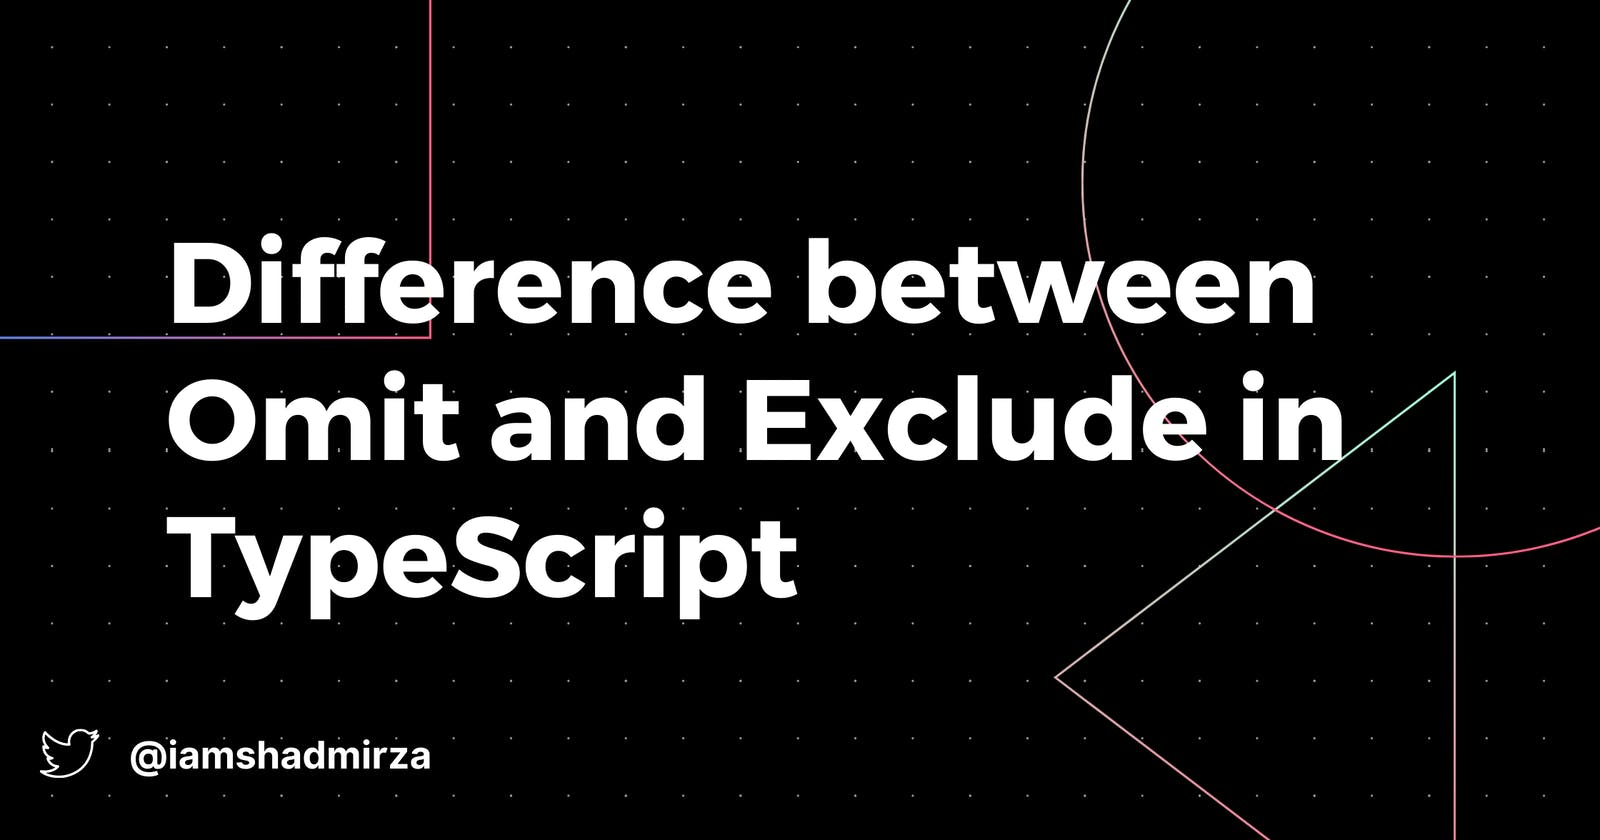 TIL: Difference between Omit and Exclude in TypeScript